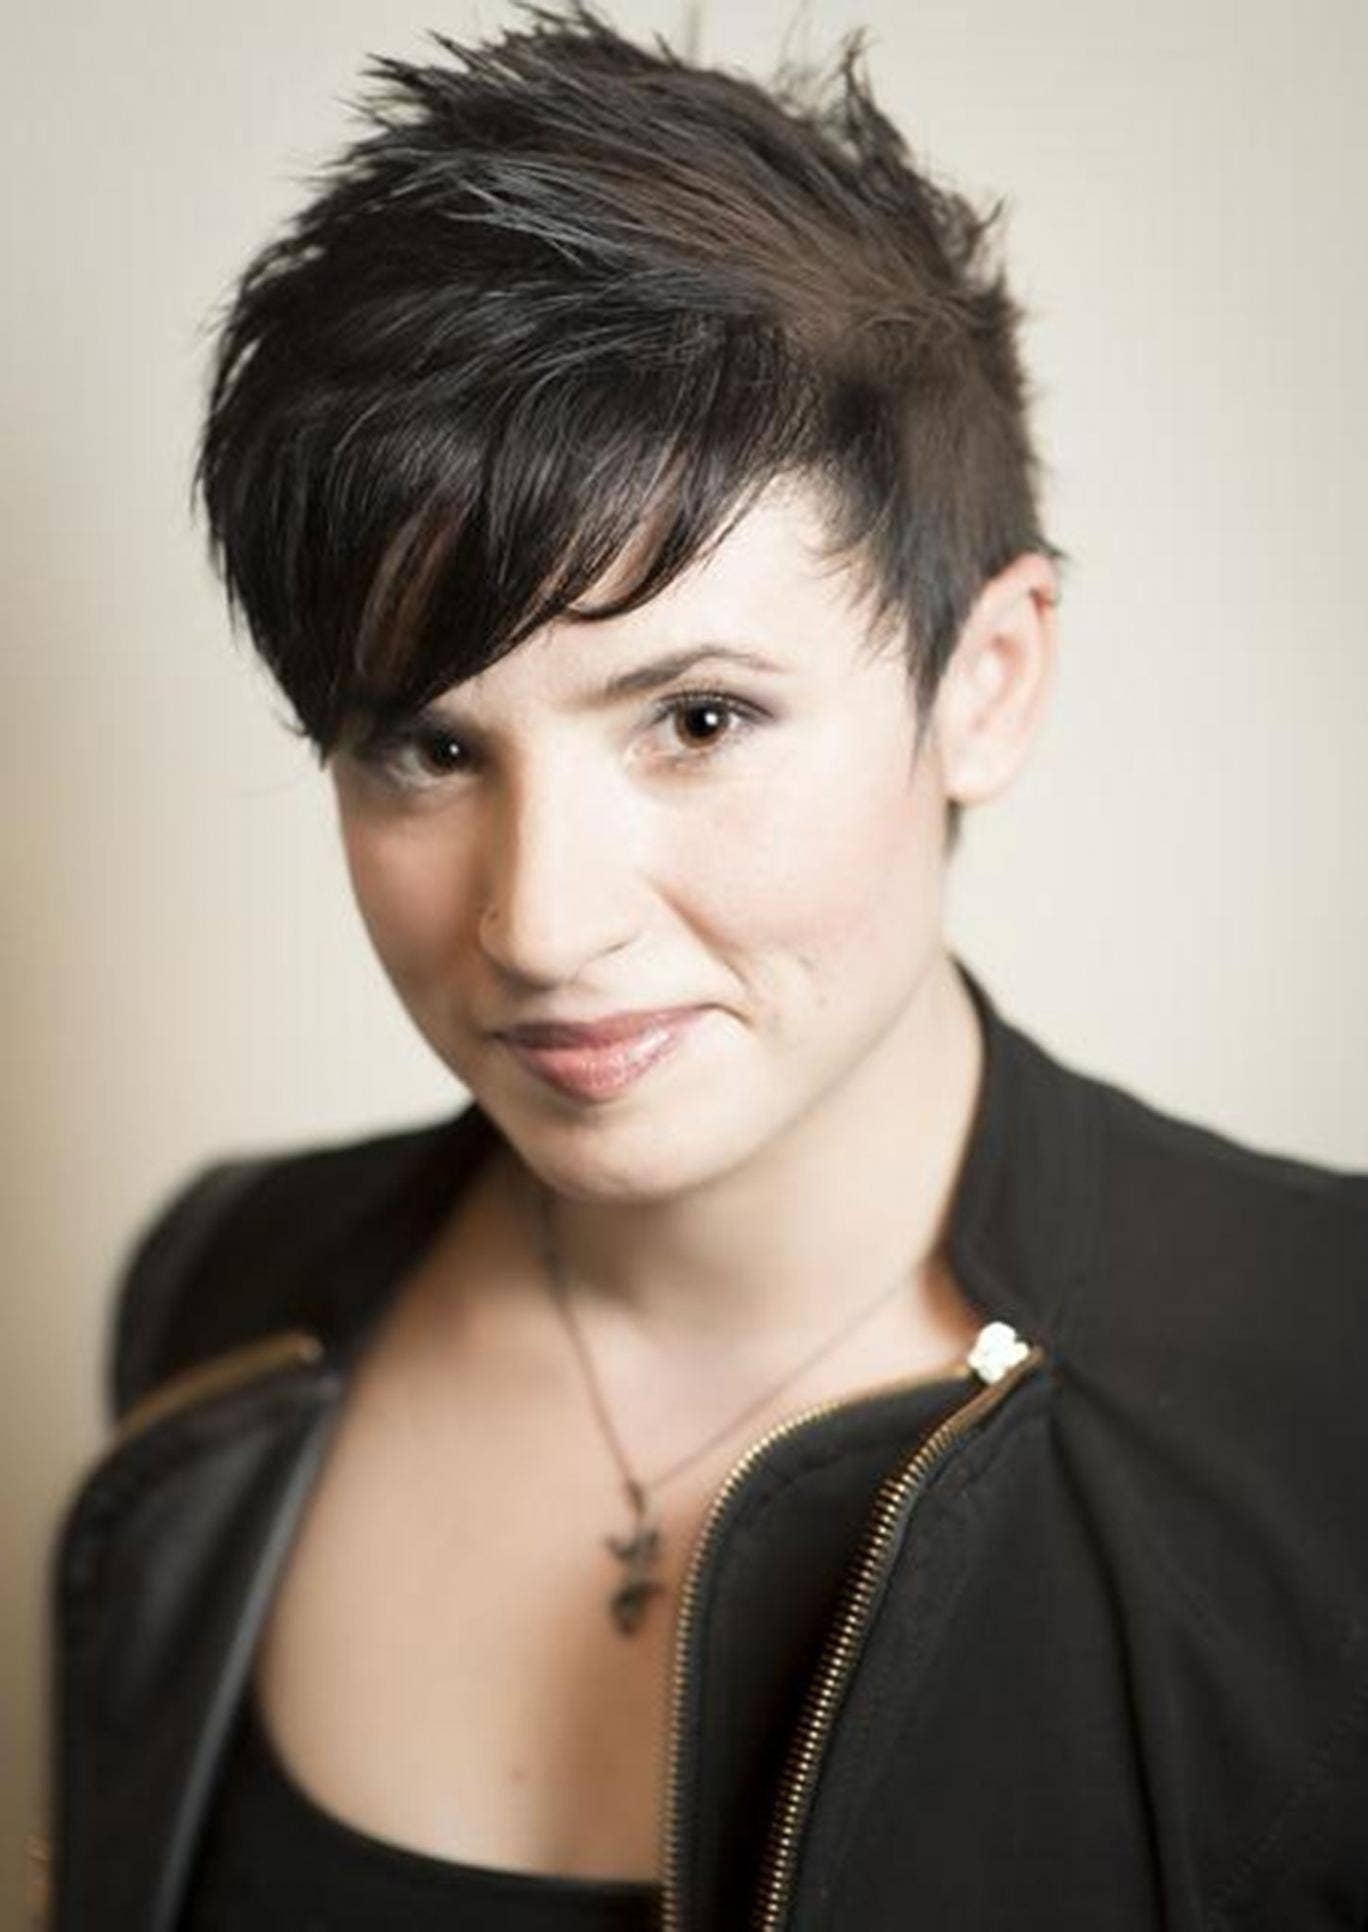 Provocative: Laurie Penny revels in being dramatic